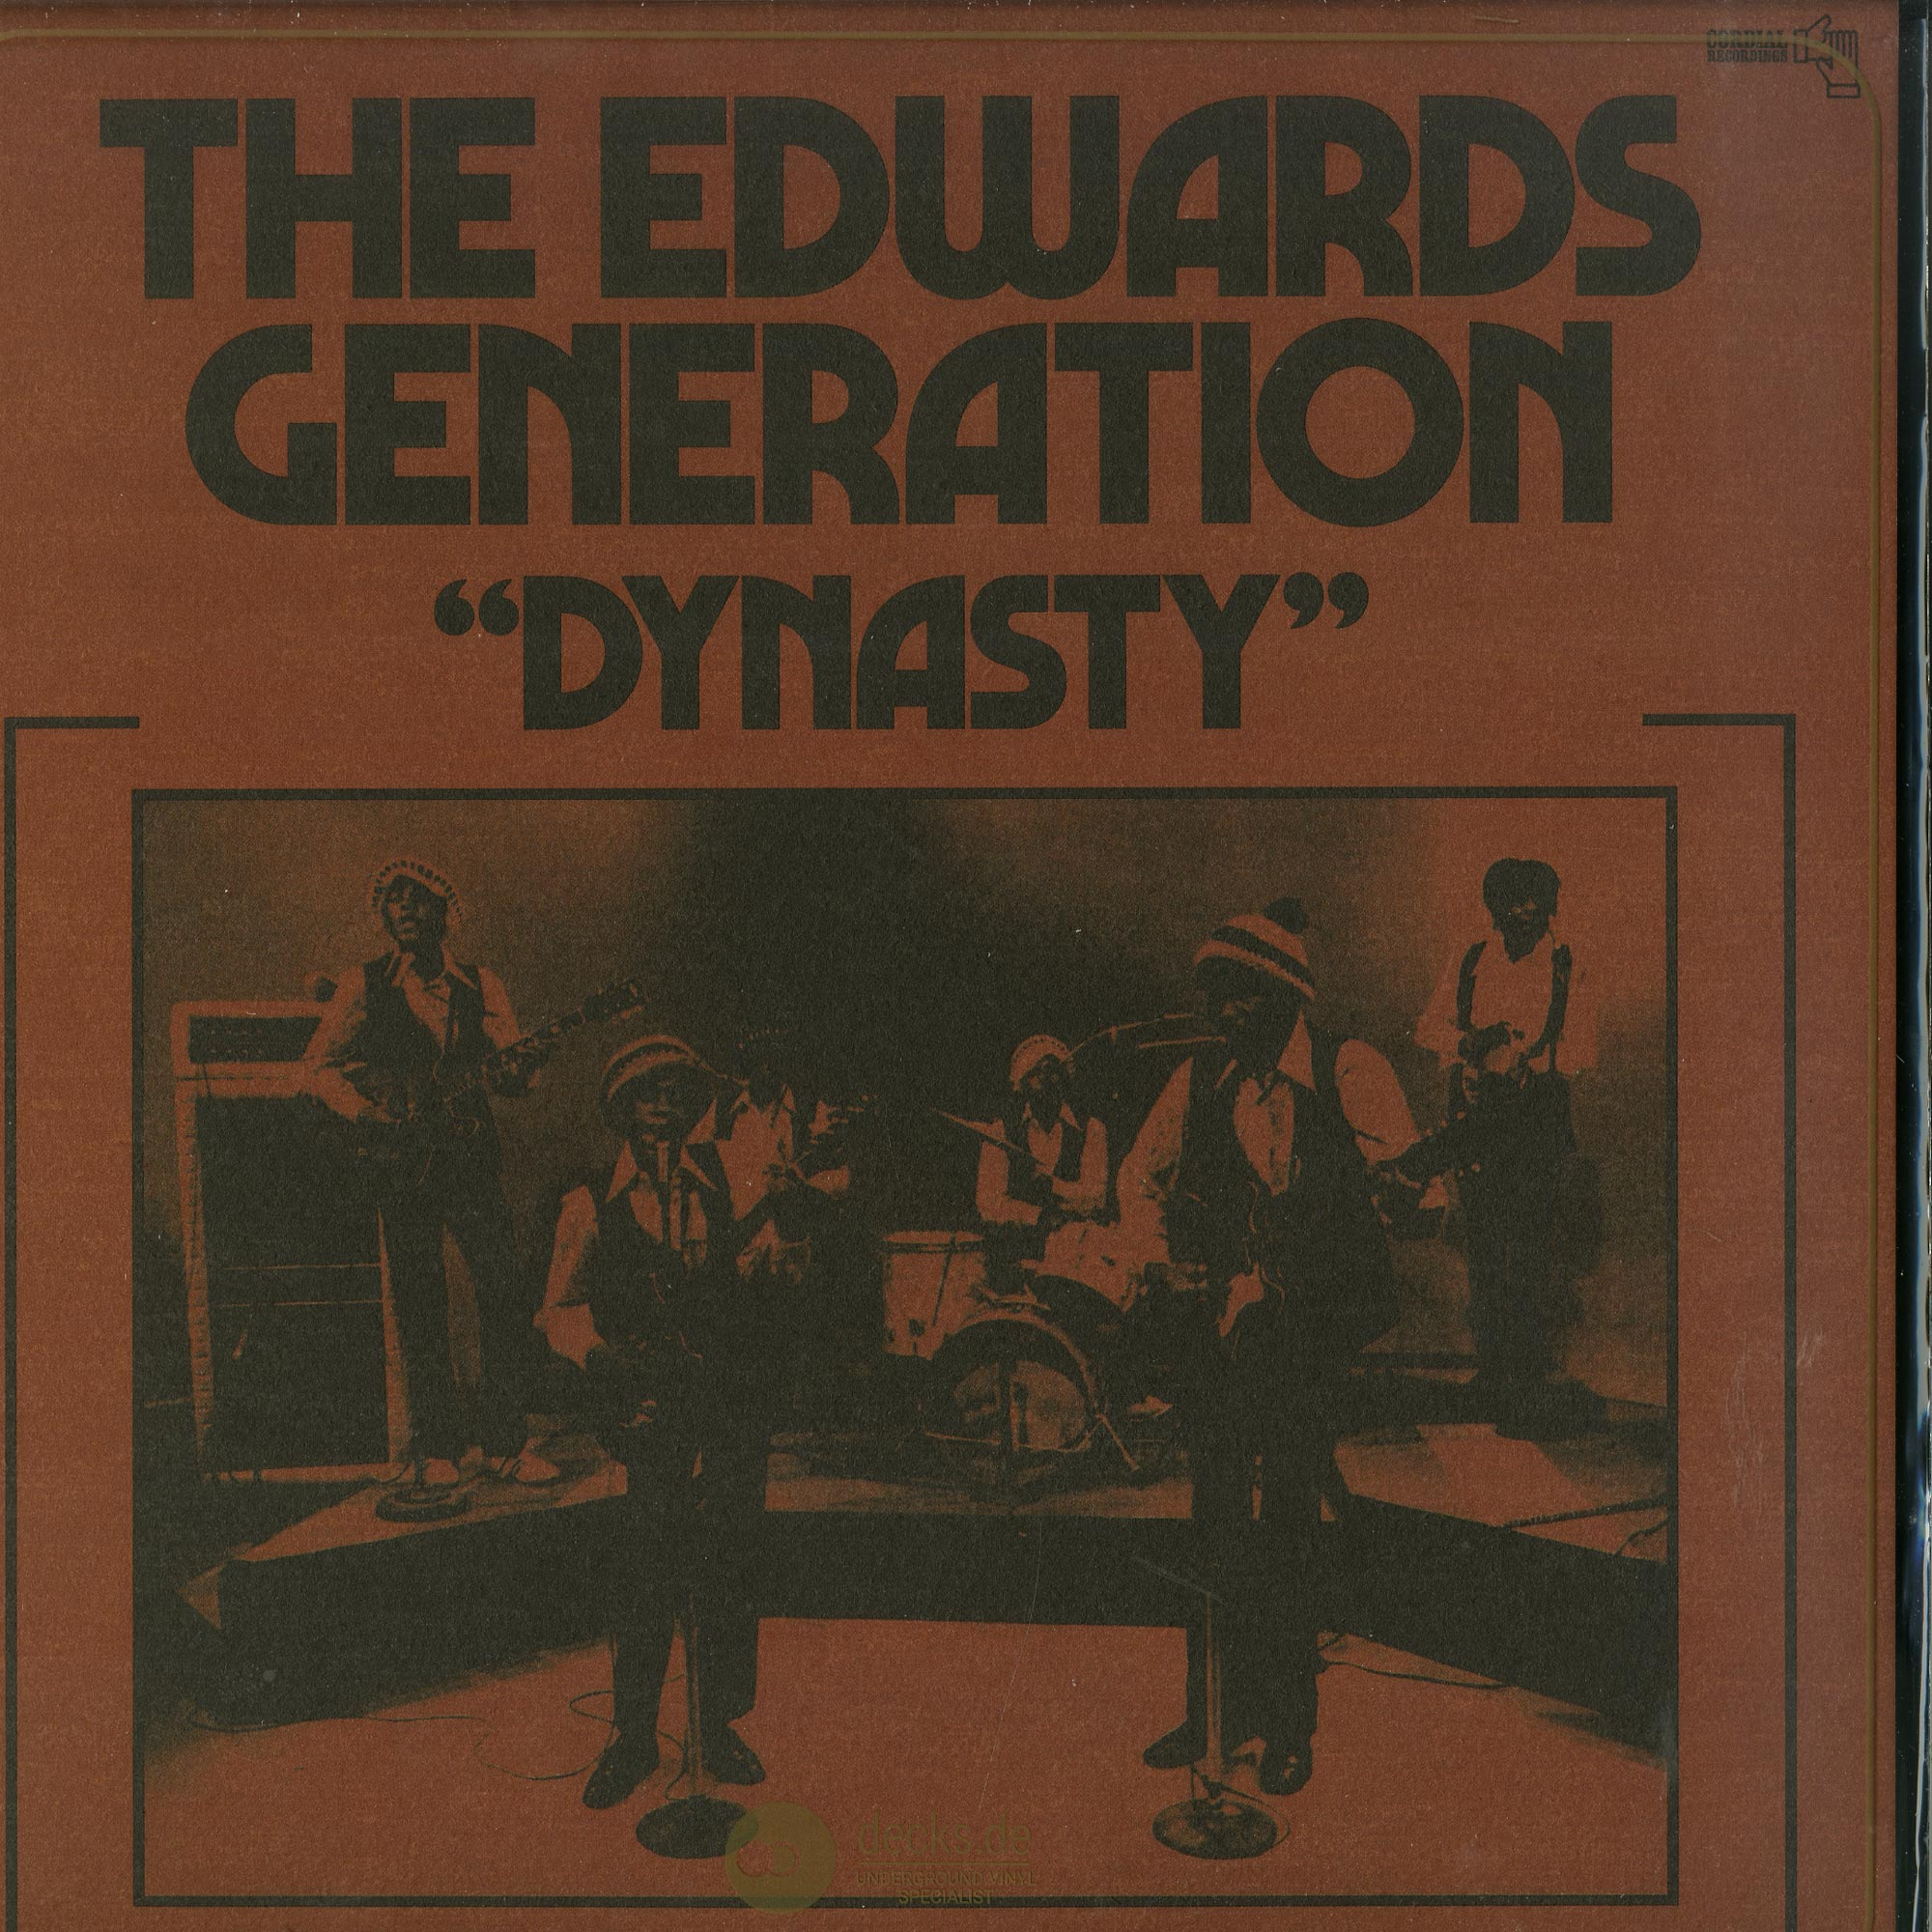 The Edwards Generation - DYNASTY